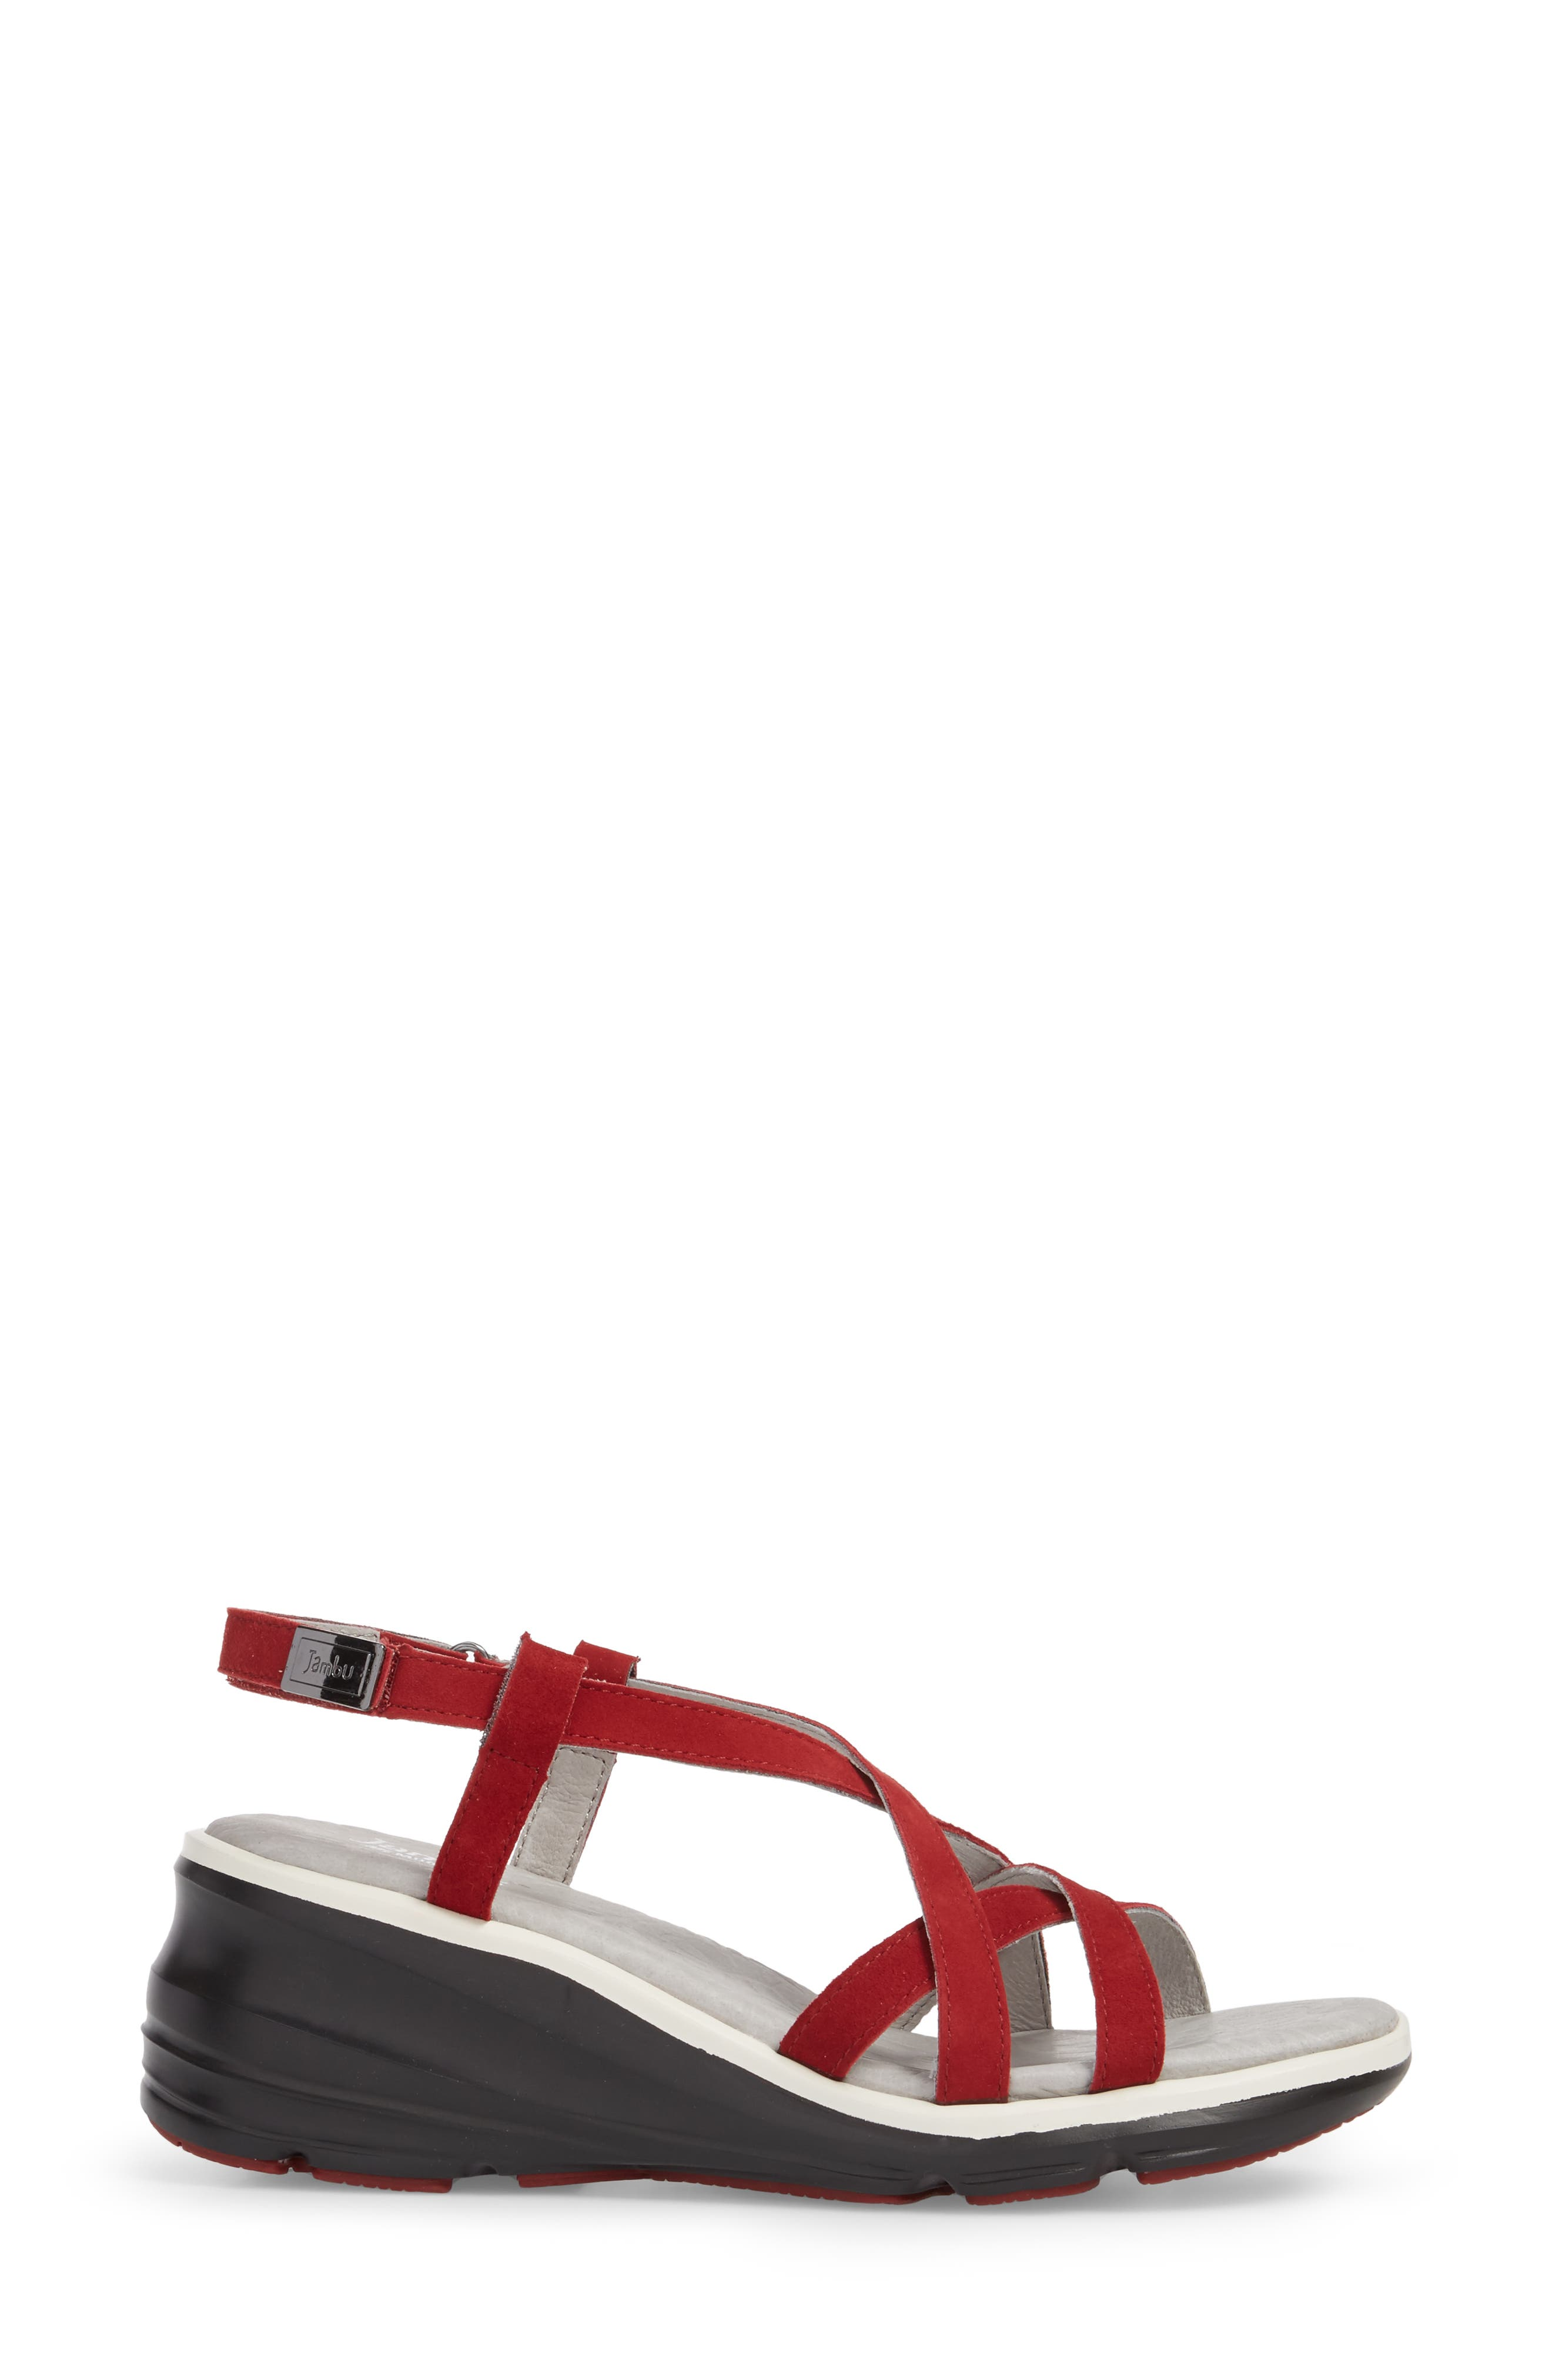 Ginger Wedge Sandal,                             Alternate thumbnail 3, color,                             Red Suede